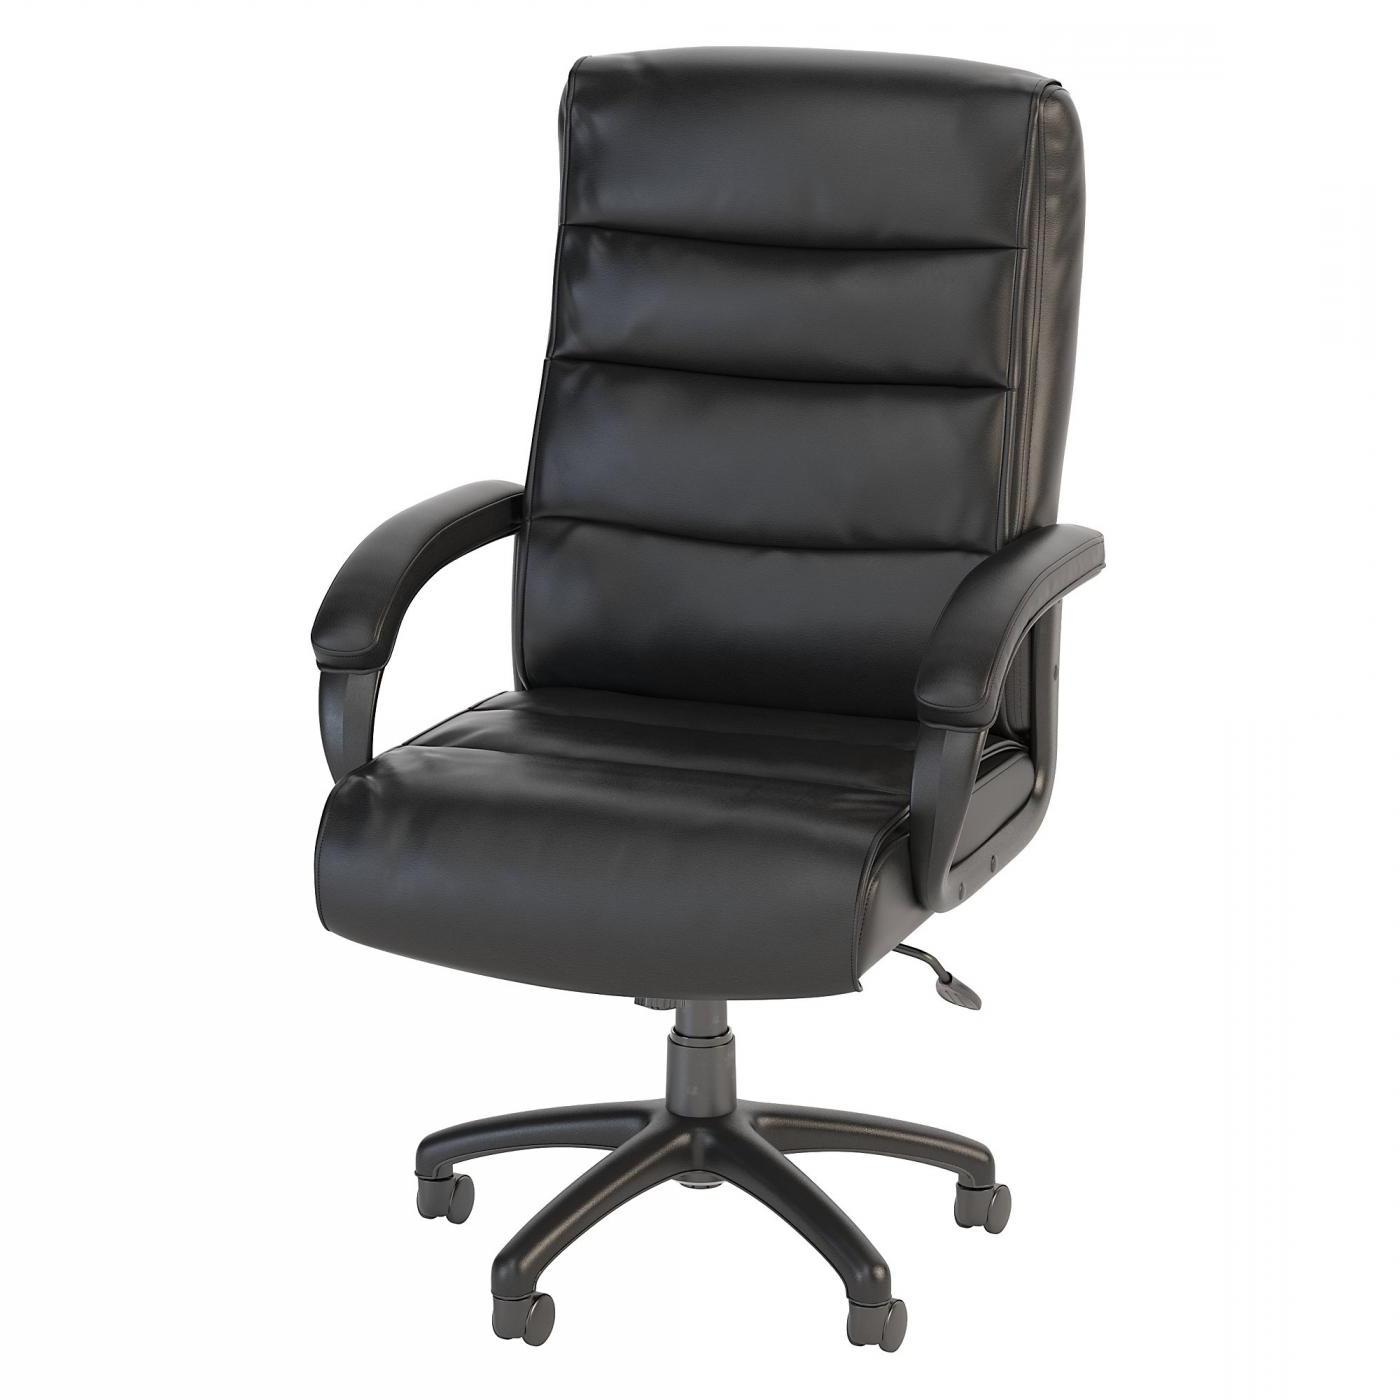 BUSH BUSINESS FURNITURE SOFT SENSE HIGH BACK LEATHER EXECUTIVE OFFICE CHAIR. FREE SHIPPING.  SALE DEDUCT 10% MORE ENTER '10percent' IN COUPON CODE BOX WHILE CHECKING OUT.